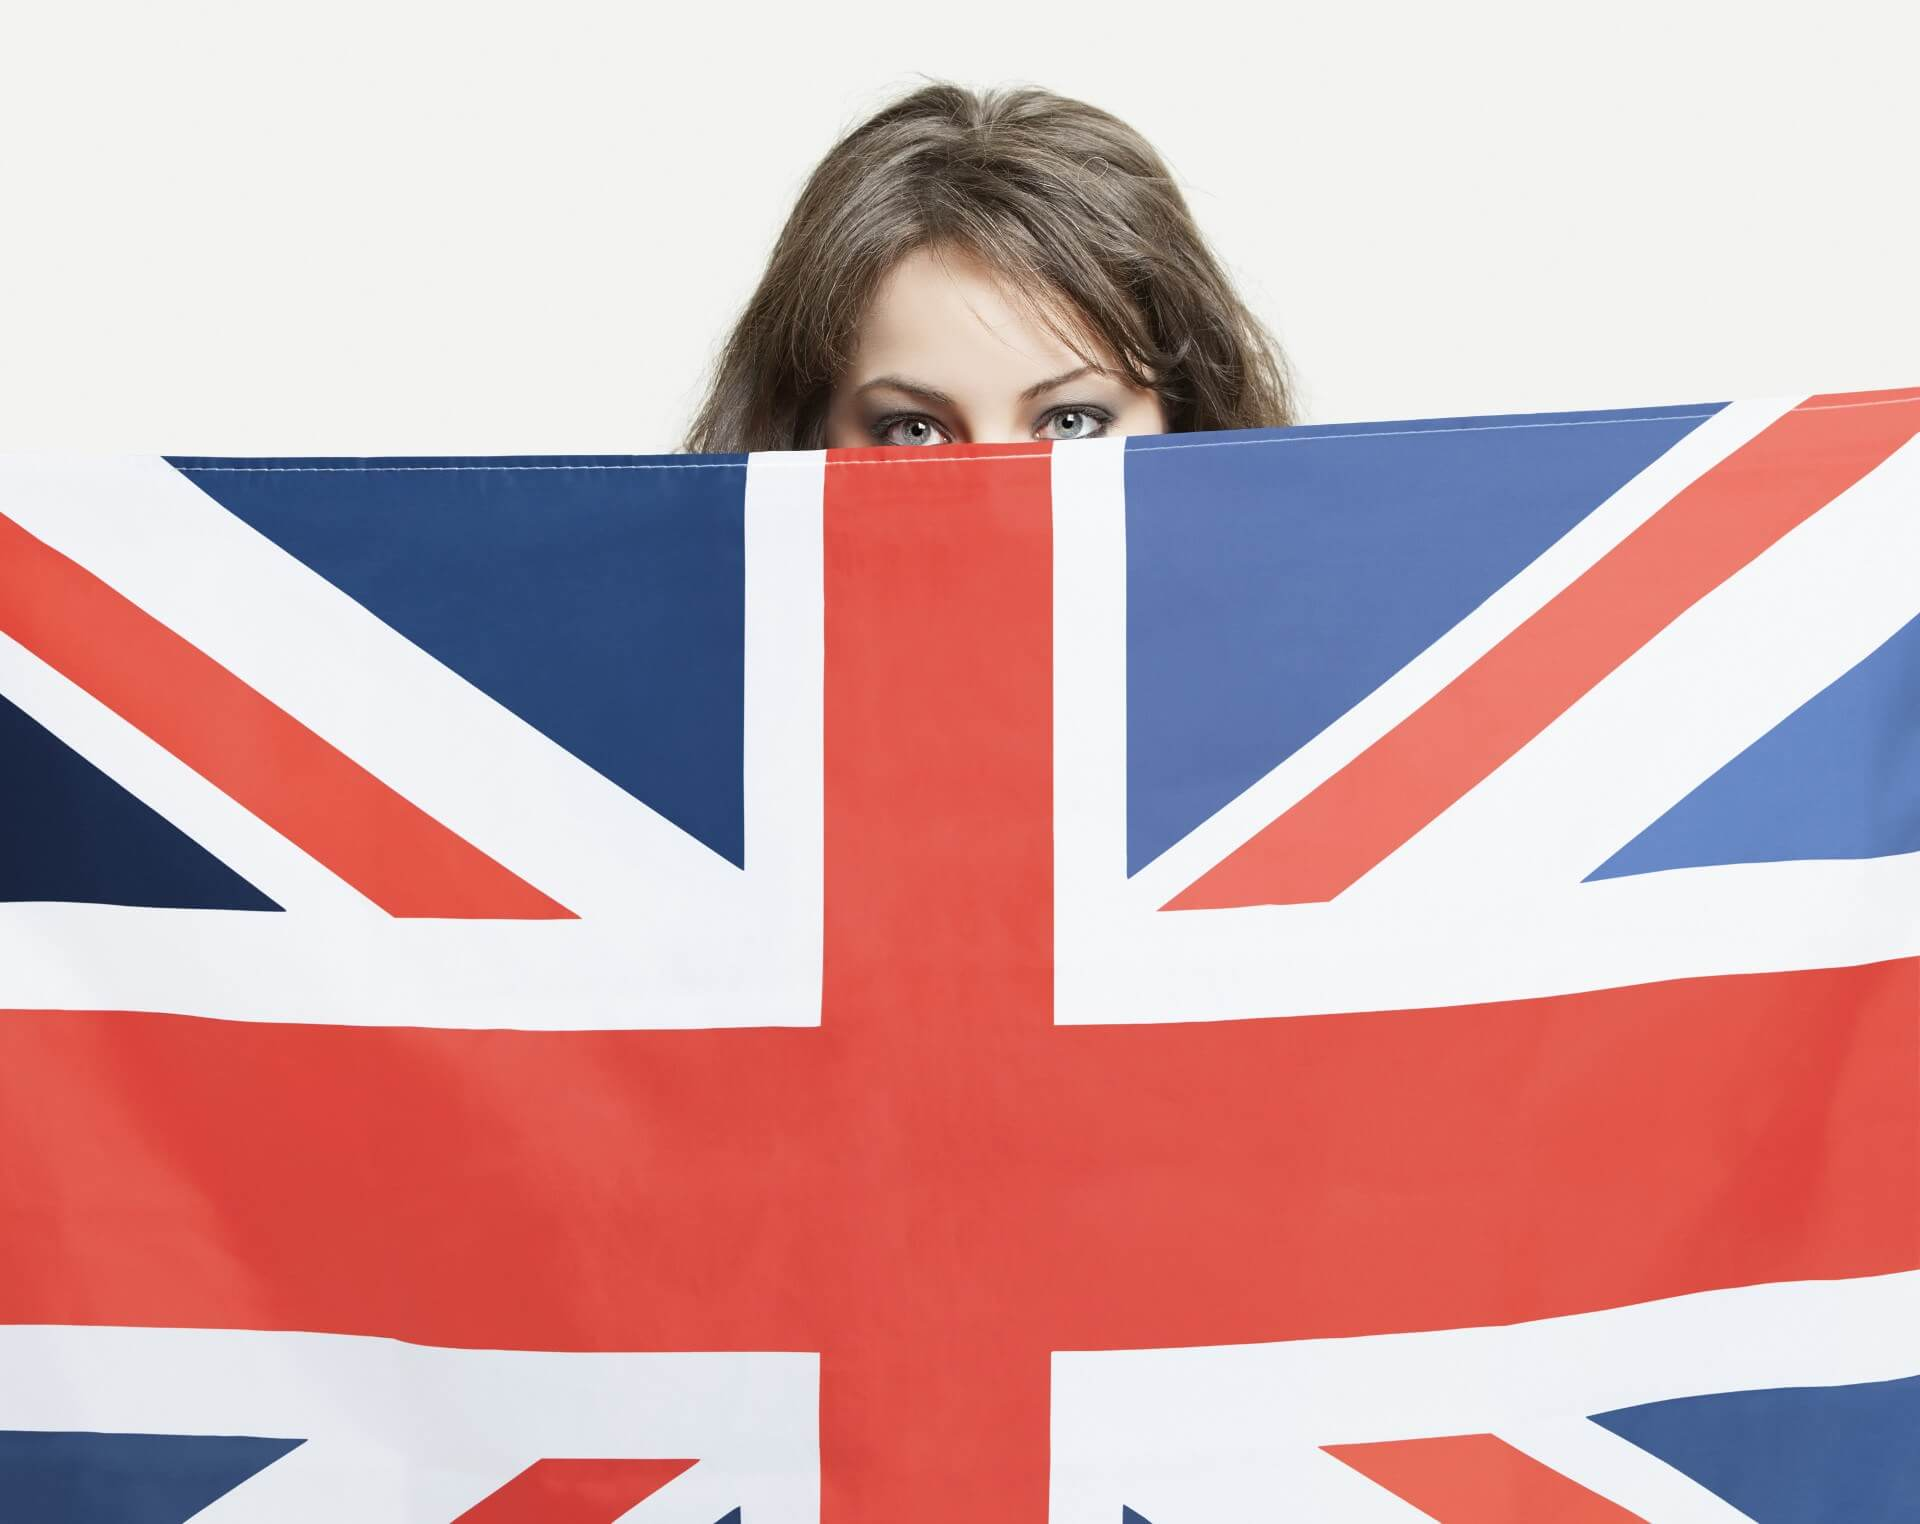 Young woman peeking over British flag against gray background